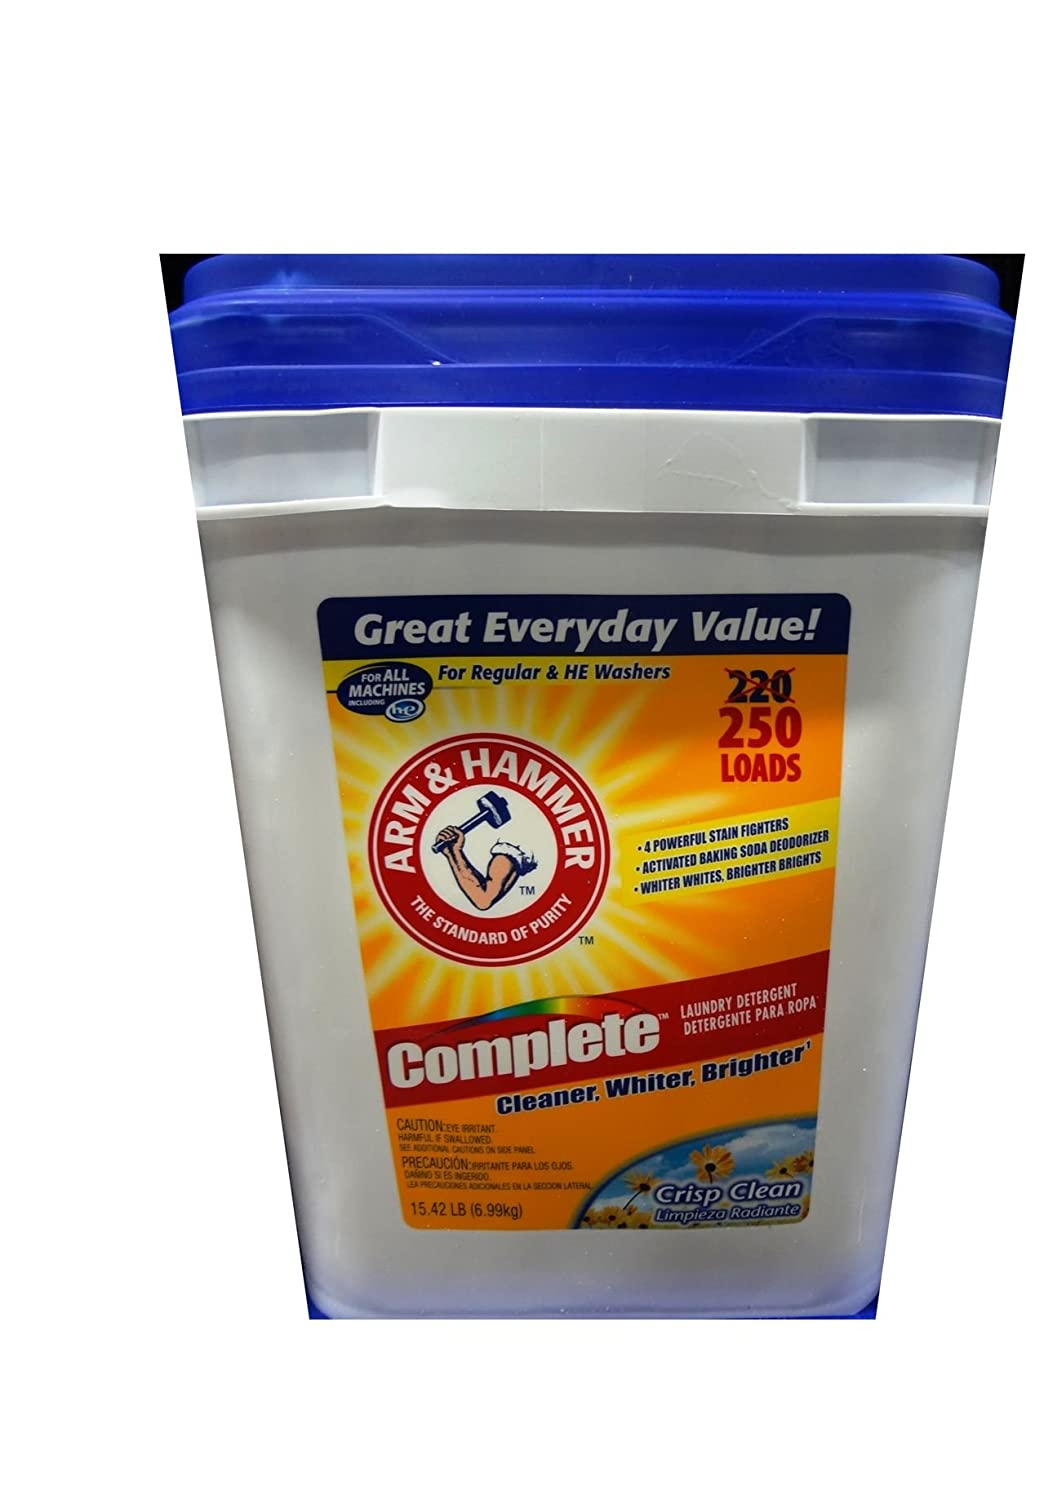 Is arm and hammer powder laundry detergent he - Amazon Com Arm Hammer Powder Laundry Detergent 18 Pound Health Personal Care